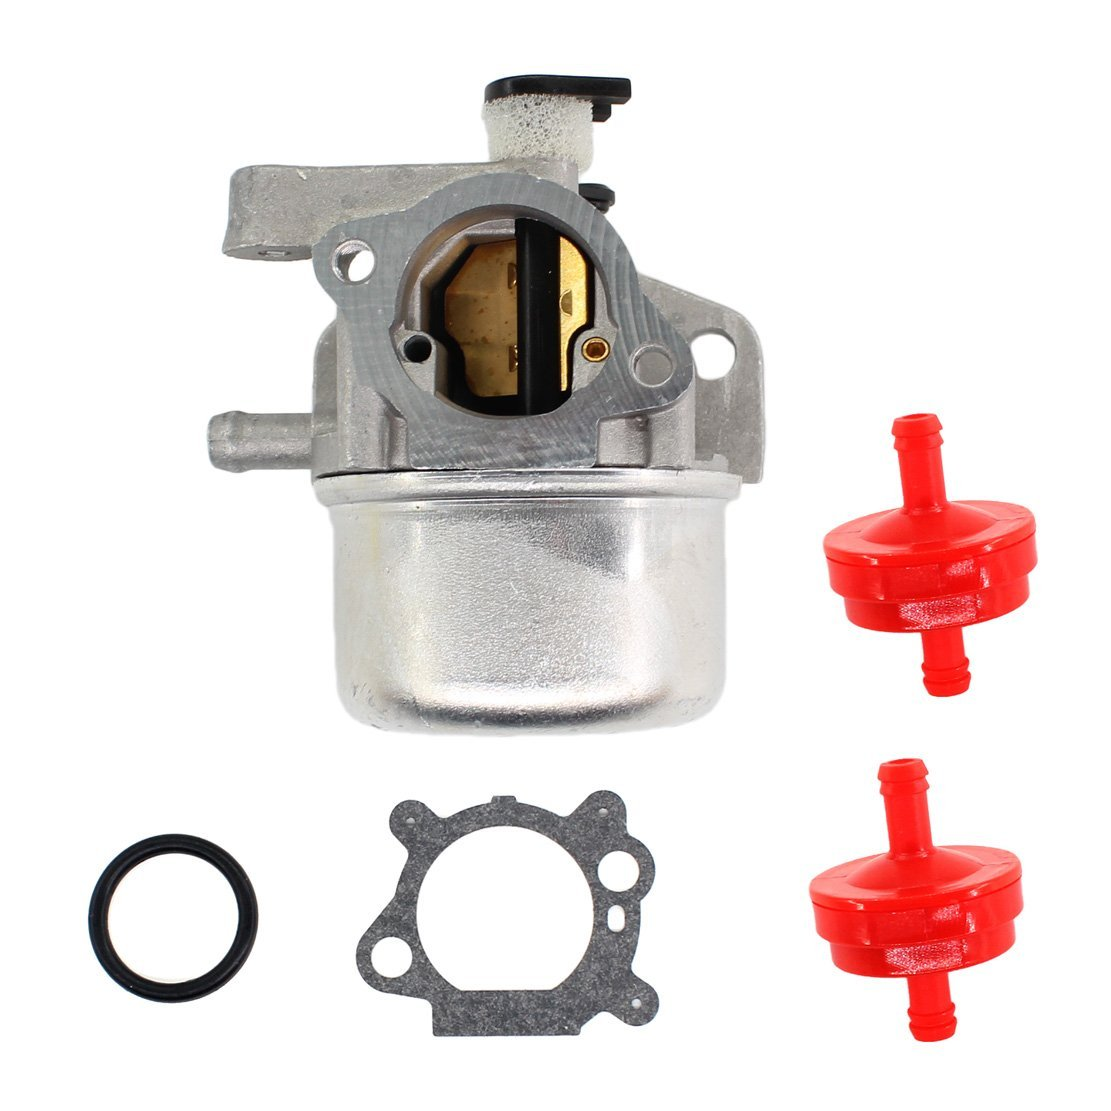 USPEEDA Carburetor for Craftsman Gold 6.25 6.75 HP MRS Push Mower 675 190cc Briggs & Stratton Fuel Filter